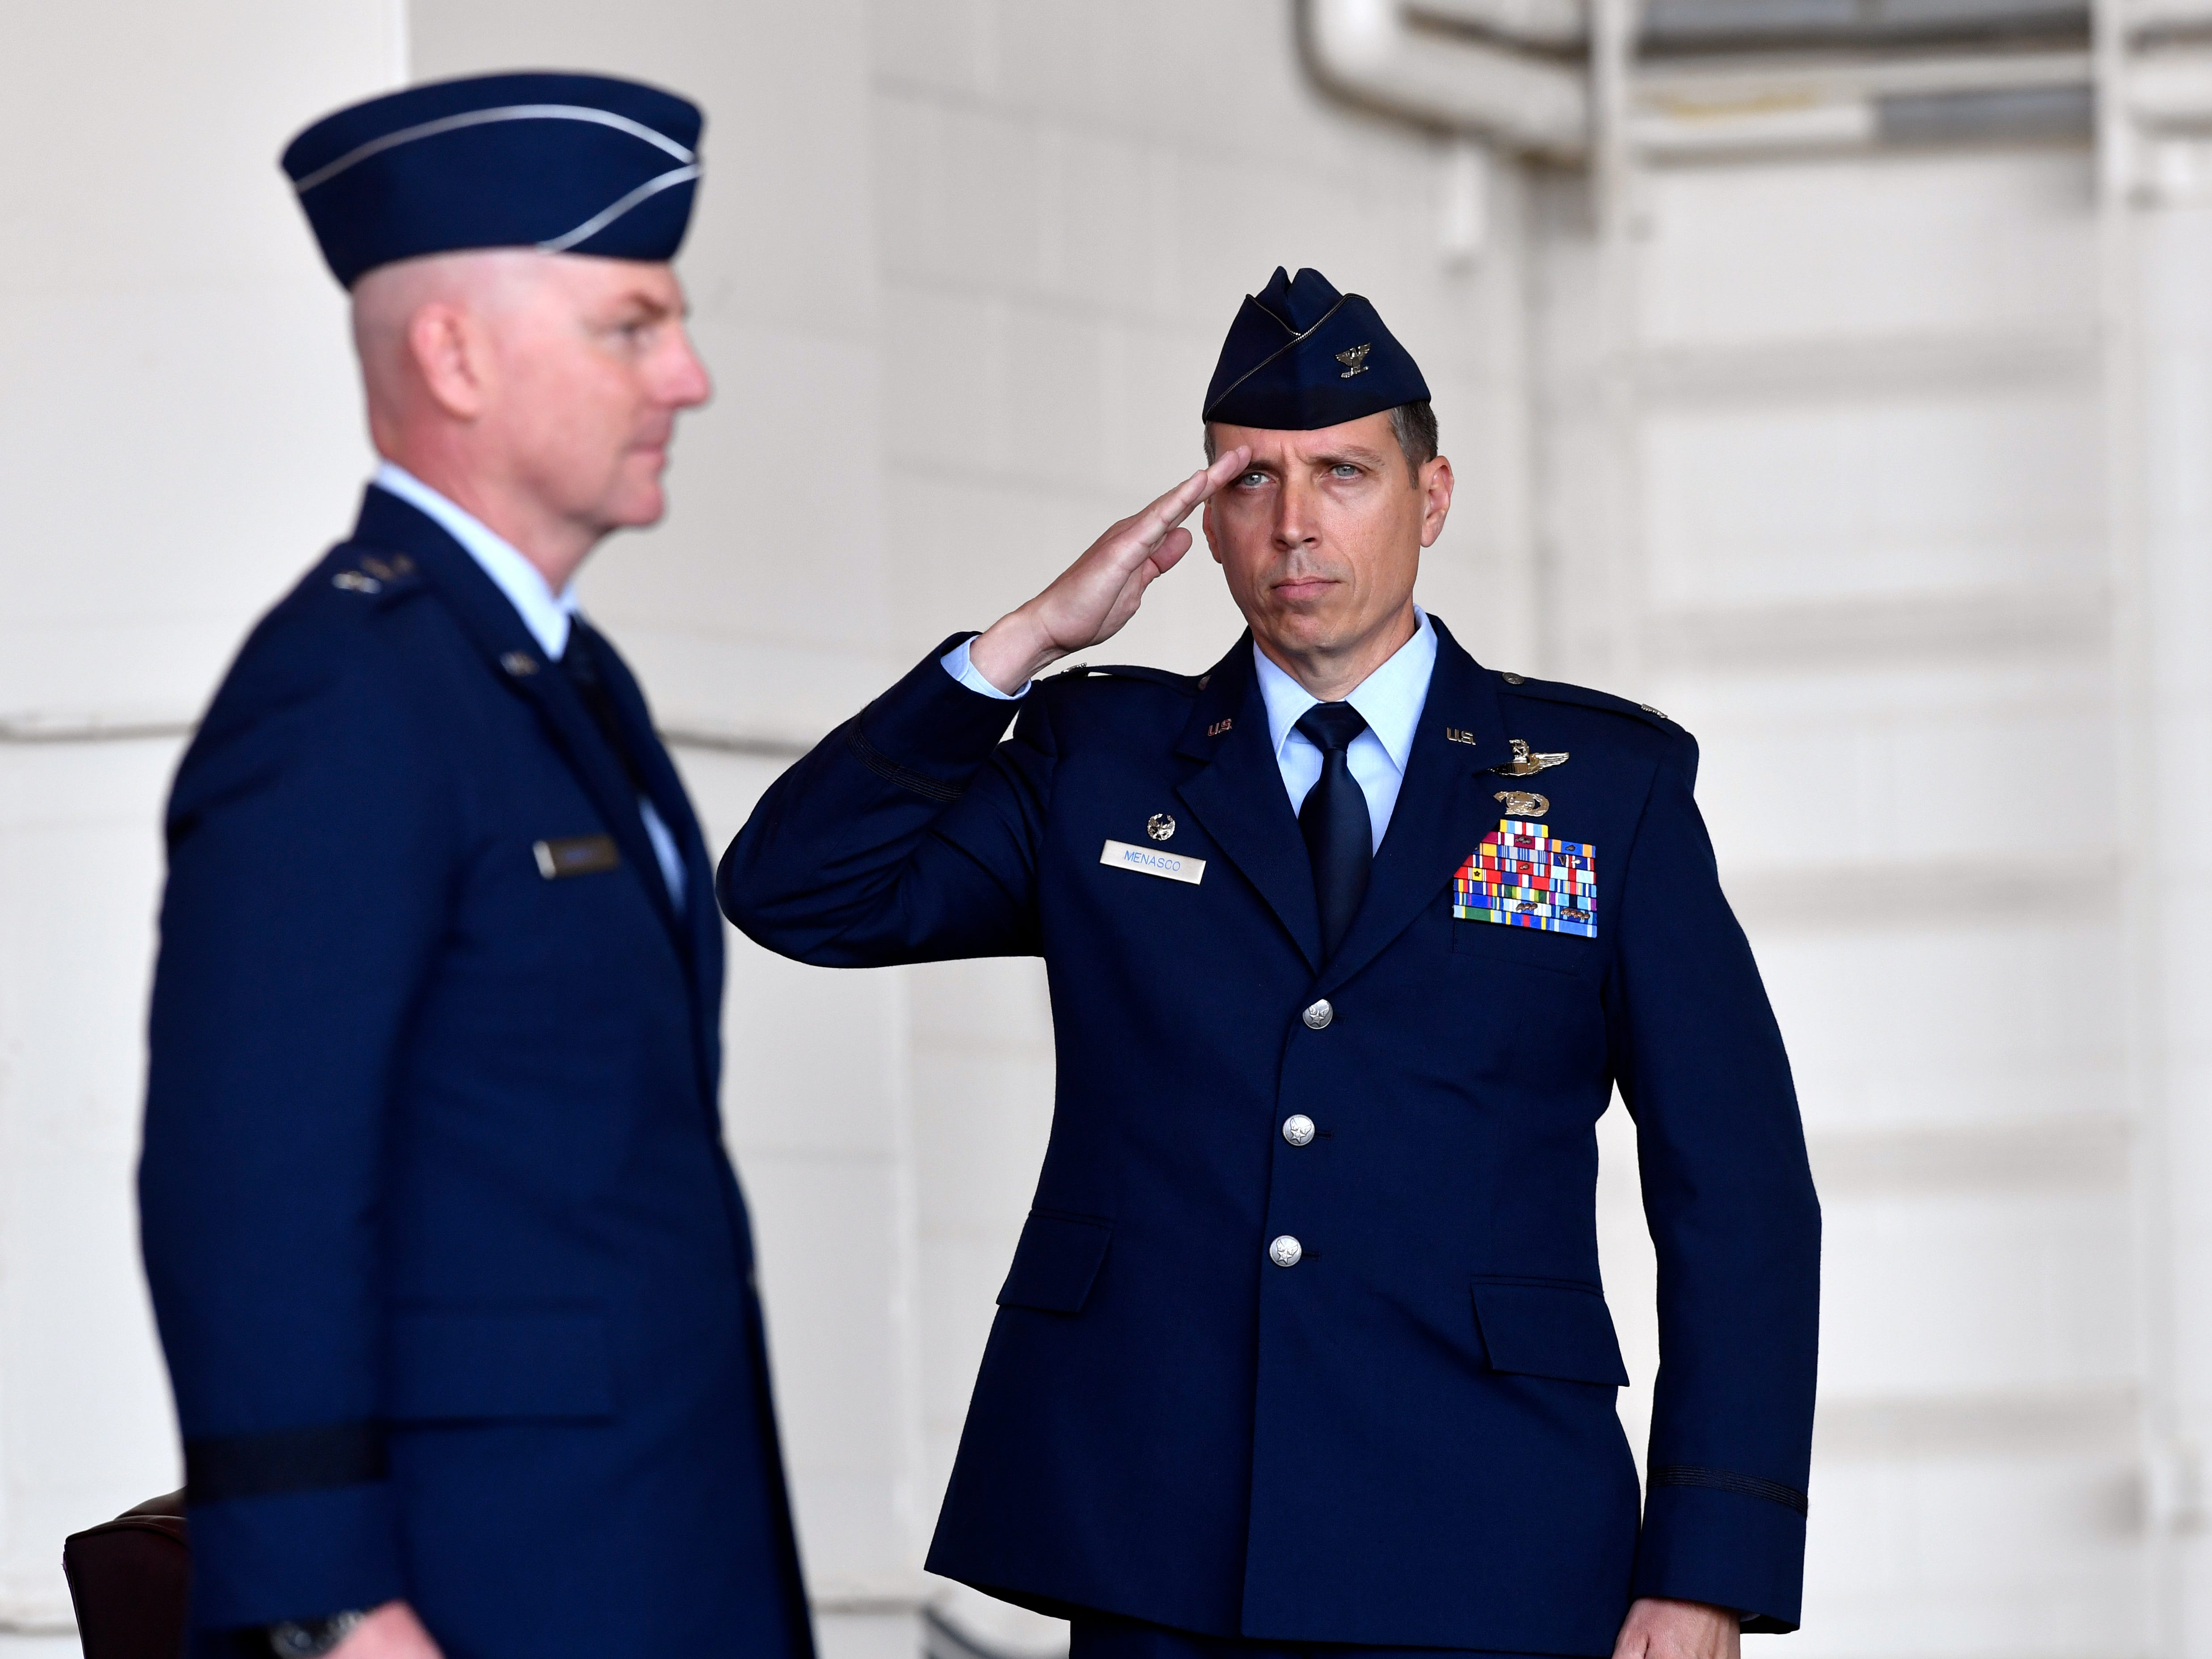 Col. Jeffrey Menasco salutes Major Gen. Sam Barrett, Commander of the 18th Air Force, during an assumption of command ceremony for the 317th Airlift Wing Friday August 3, 2018 at Dyess Air Force Base. Menasco was named the 317th's new commander during the proceedings.